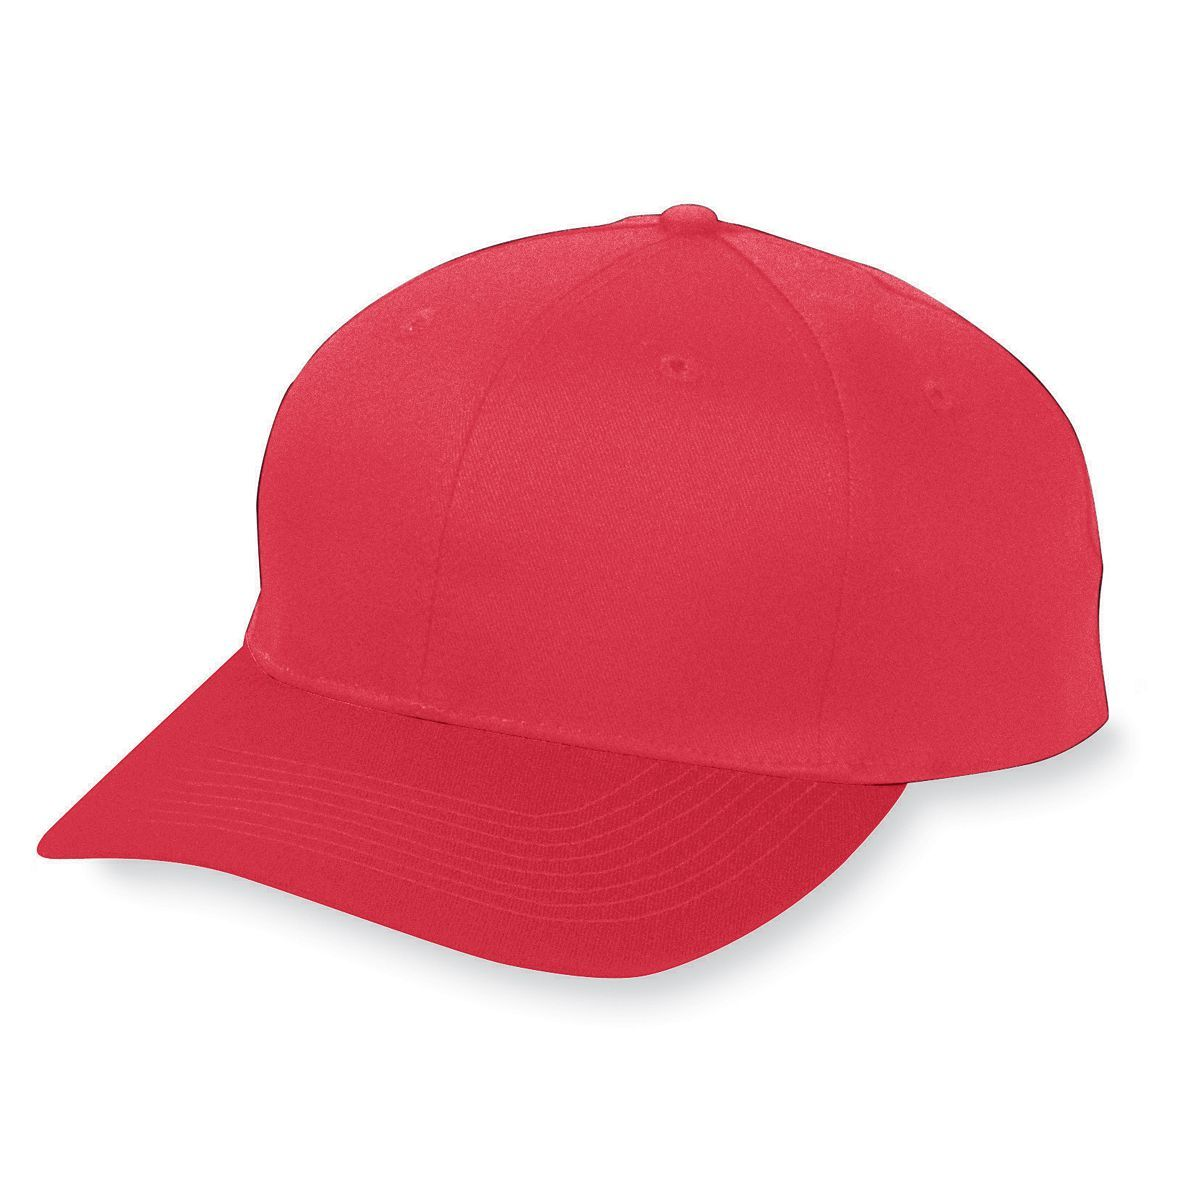 Six-Panel Cotton Twill Low-Profile Cap - RED